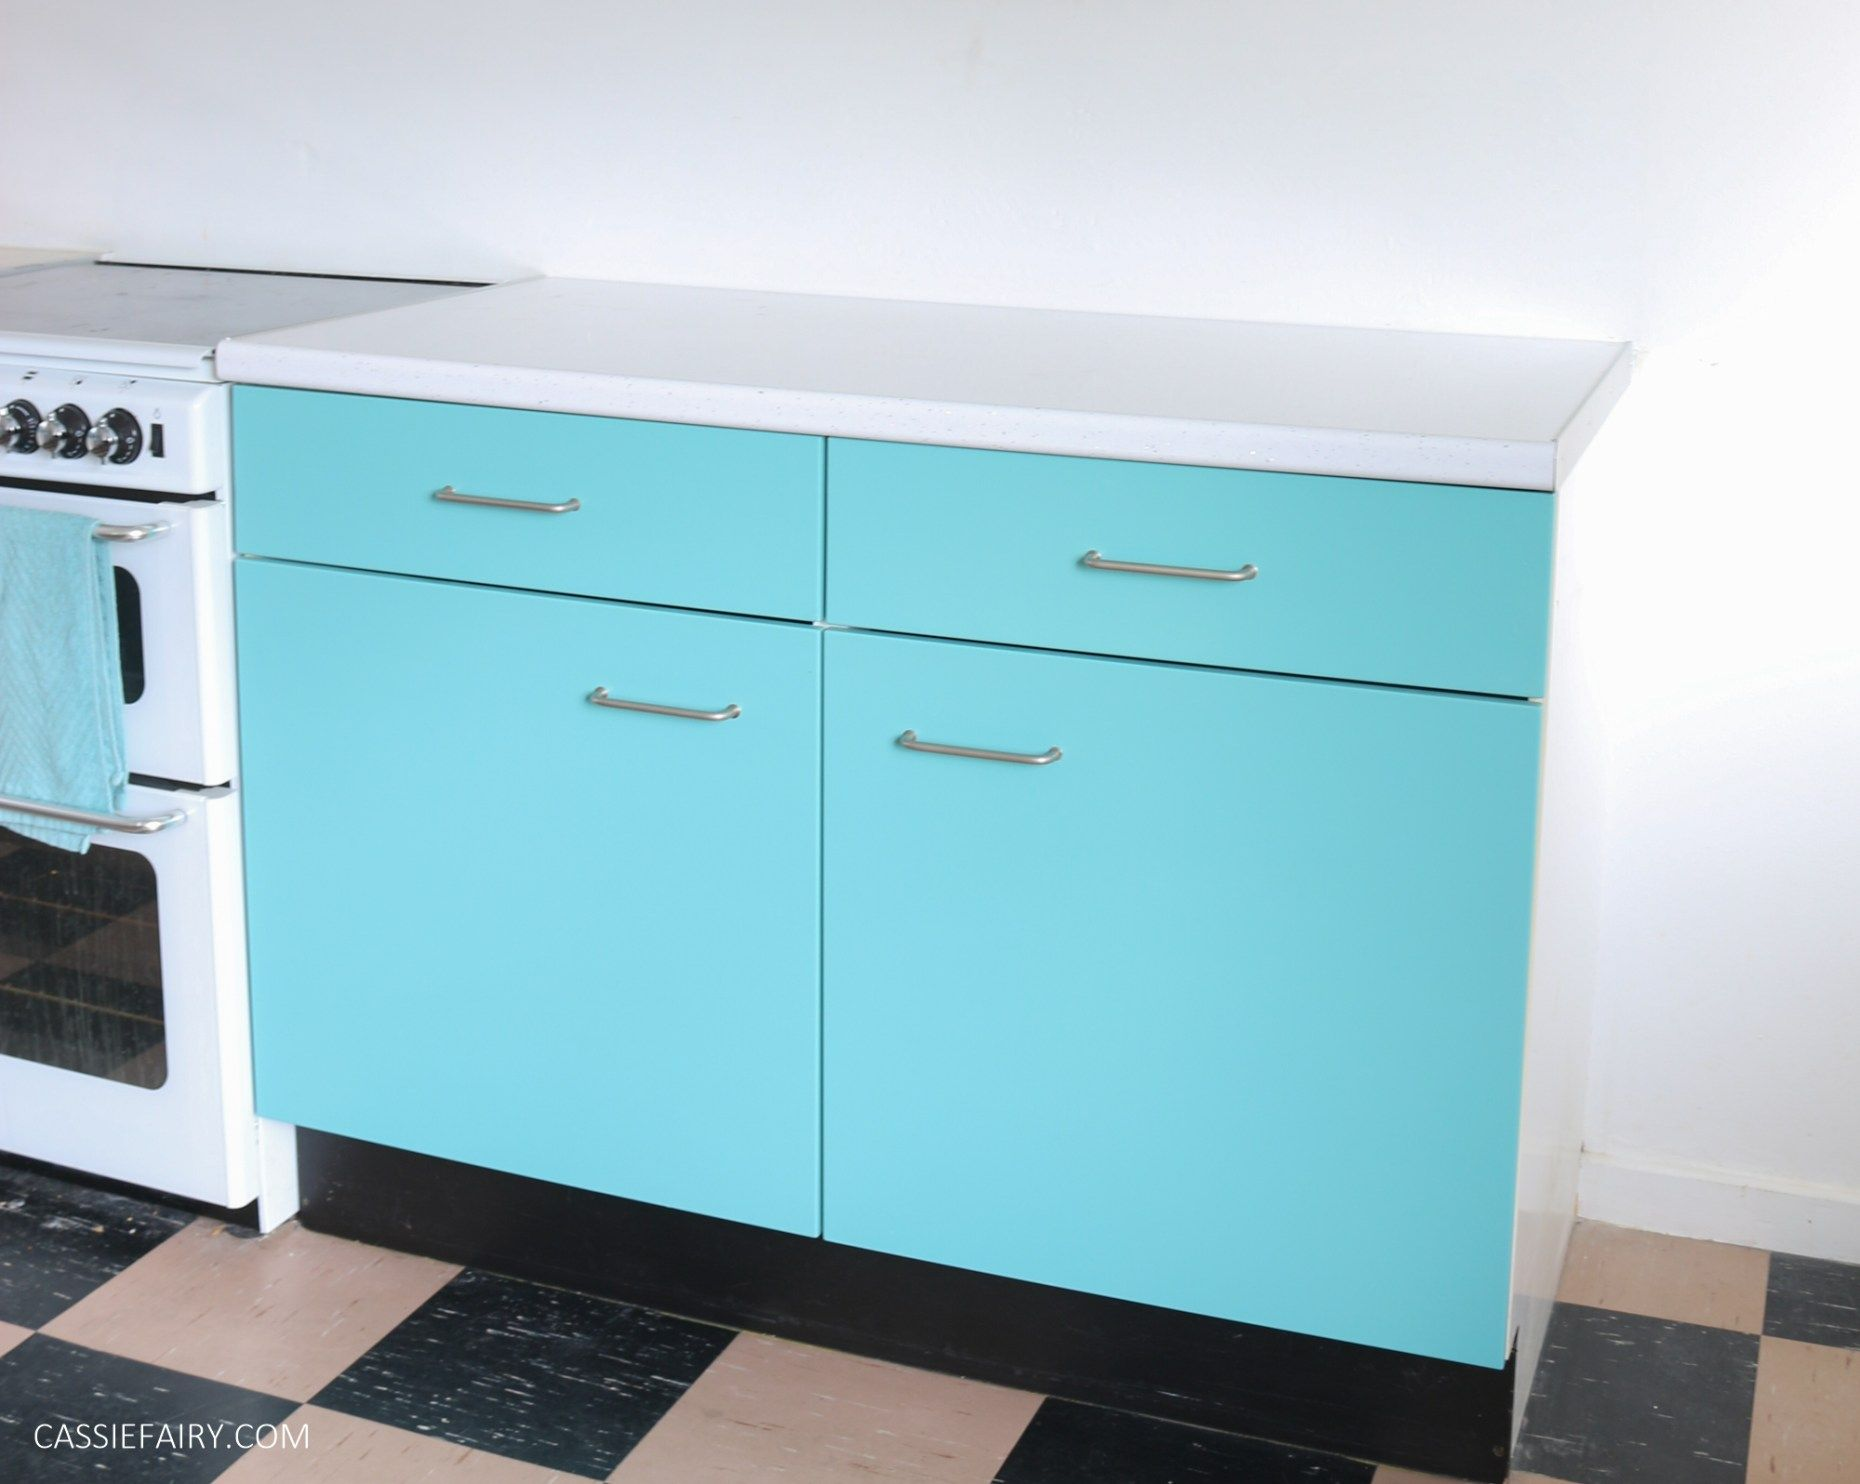 My Thrifty 50s Kitchen Renovation: A low-cost worktop & upcycled ...